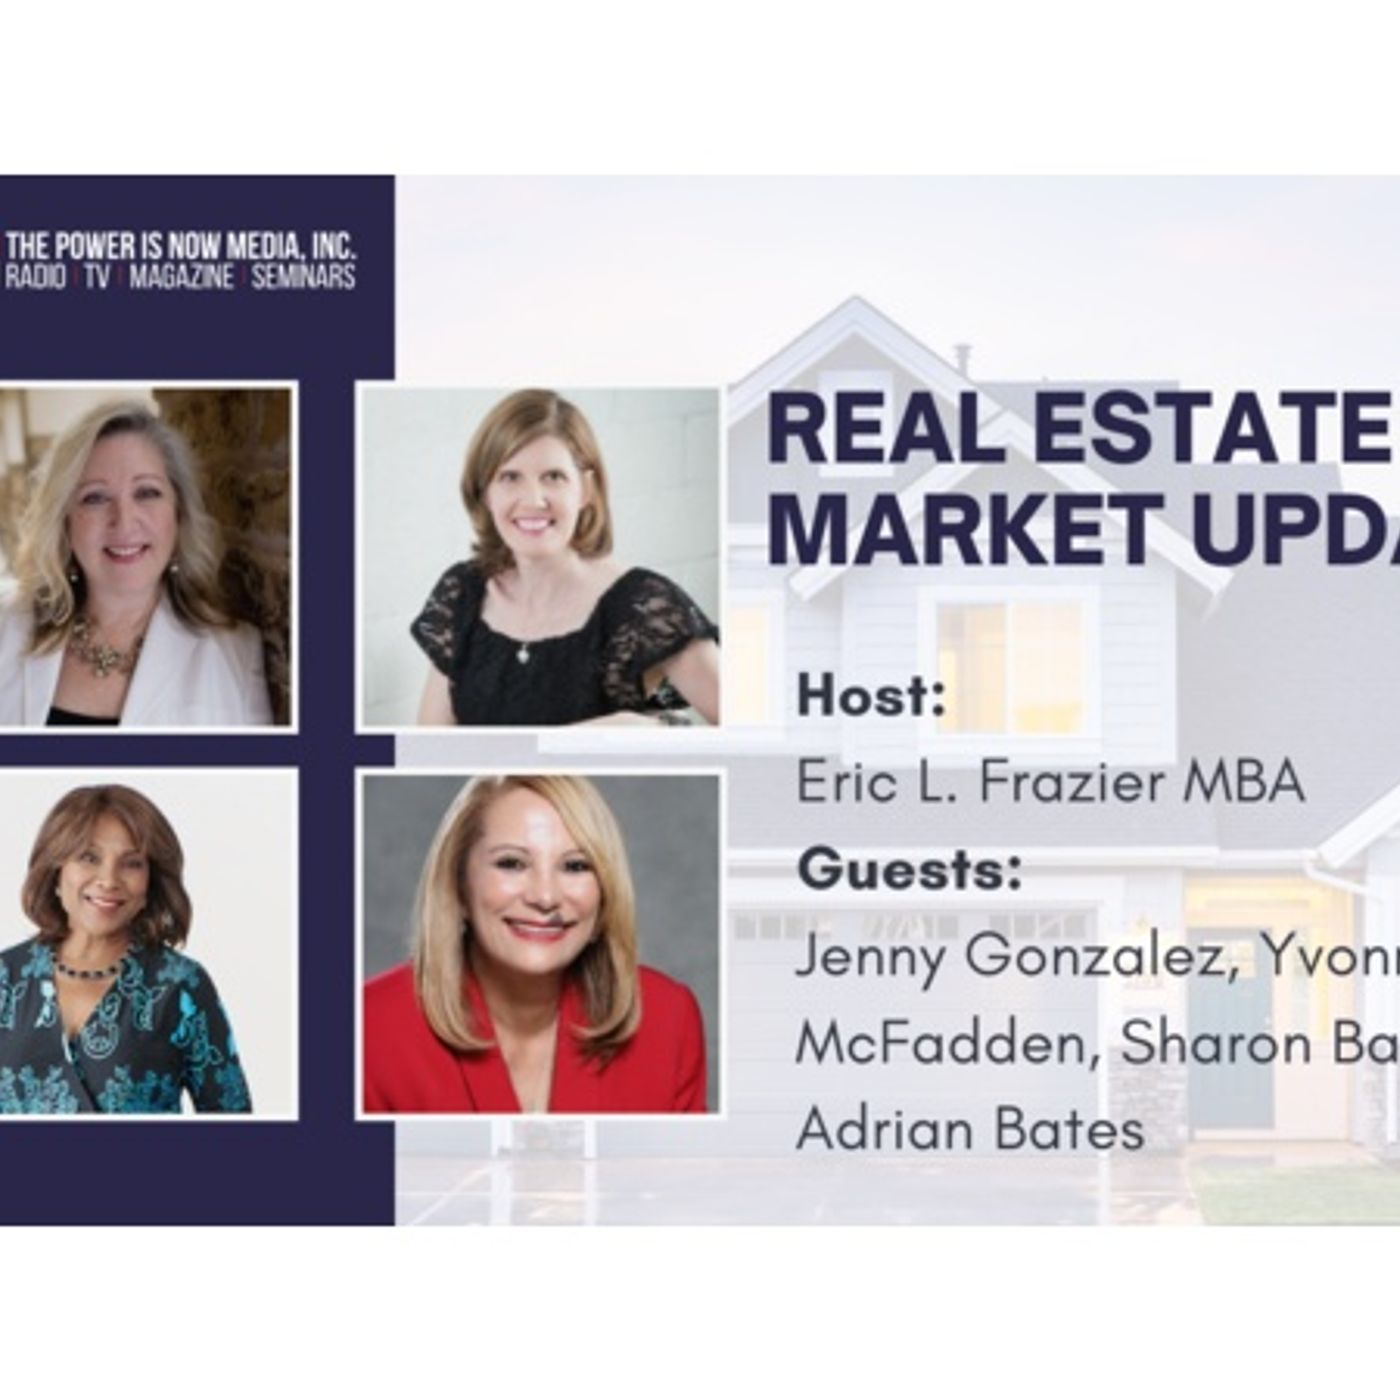 Real Estate Market Updates with The Power Is Now VIP Agents